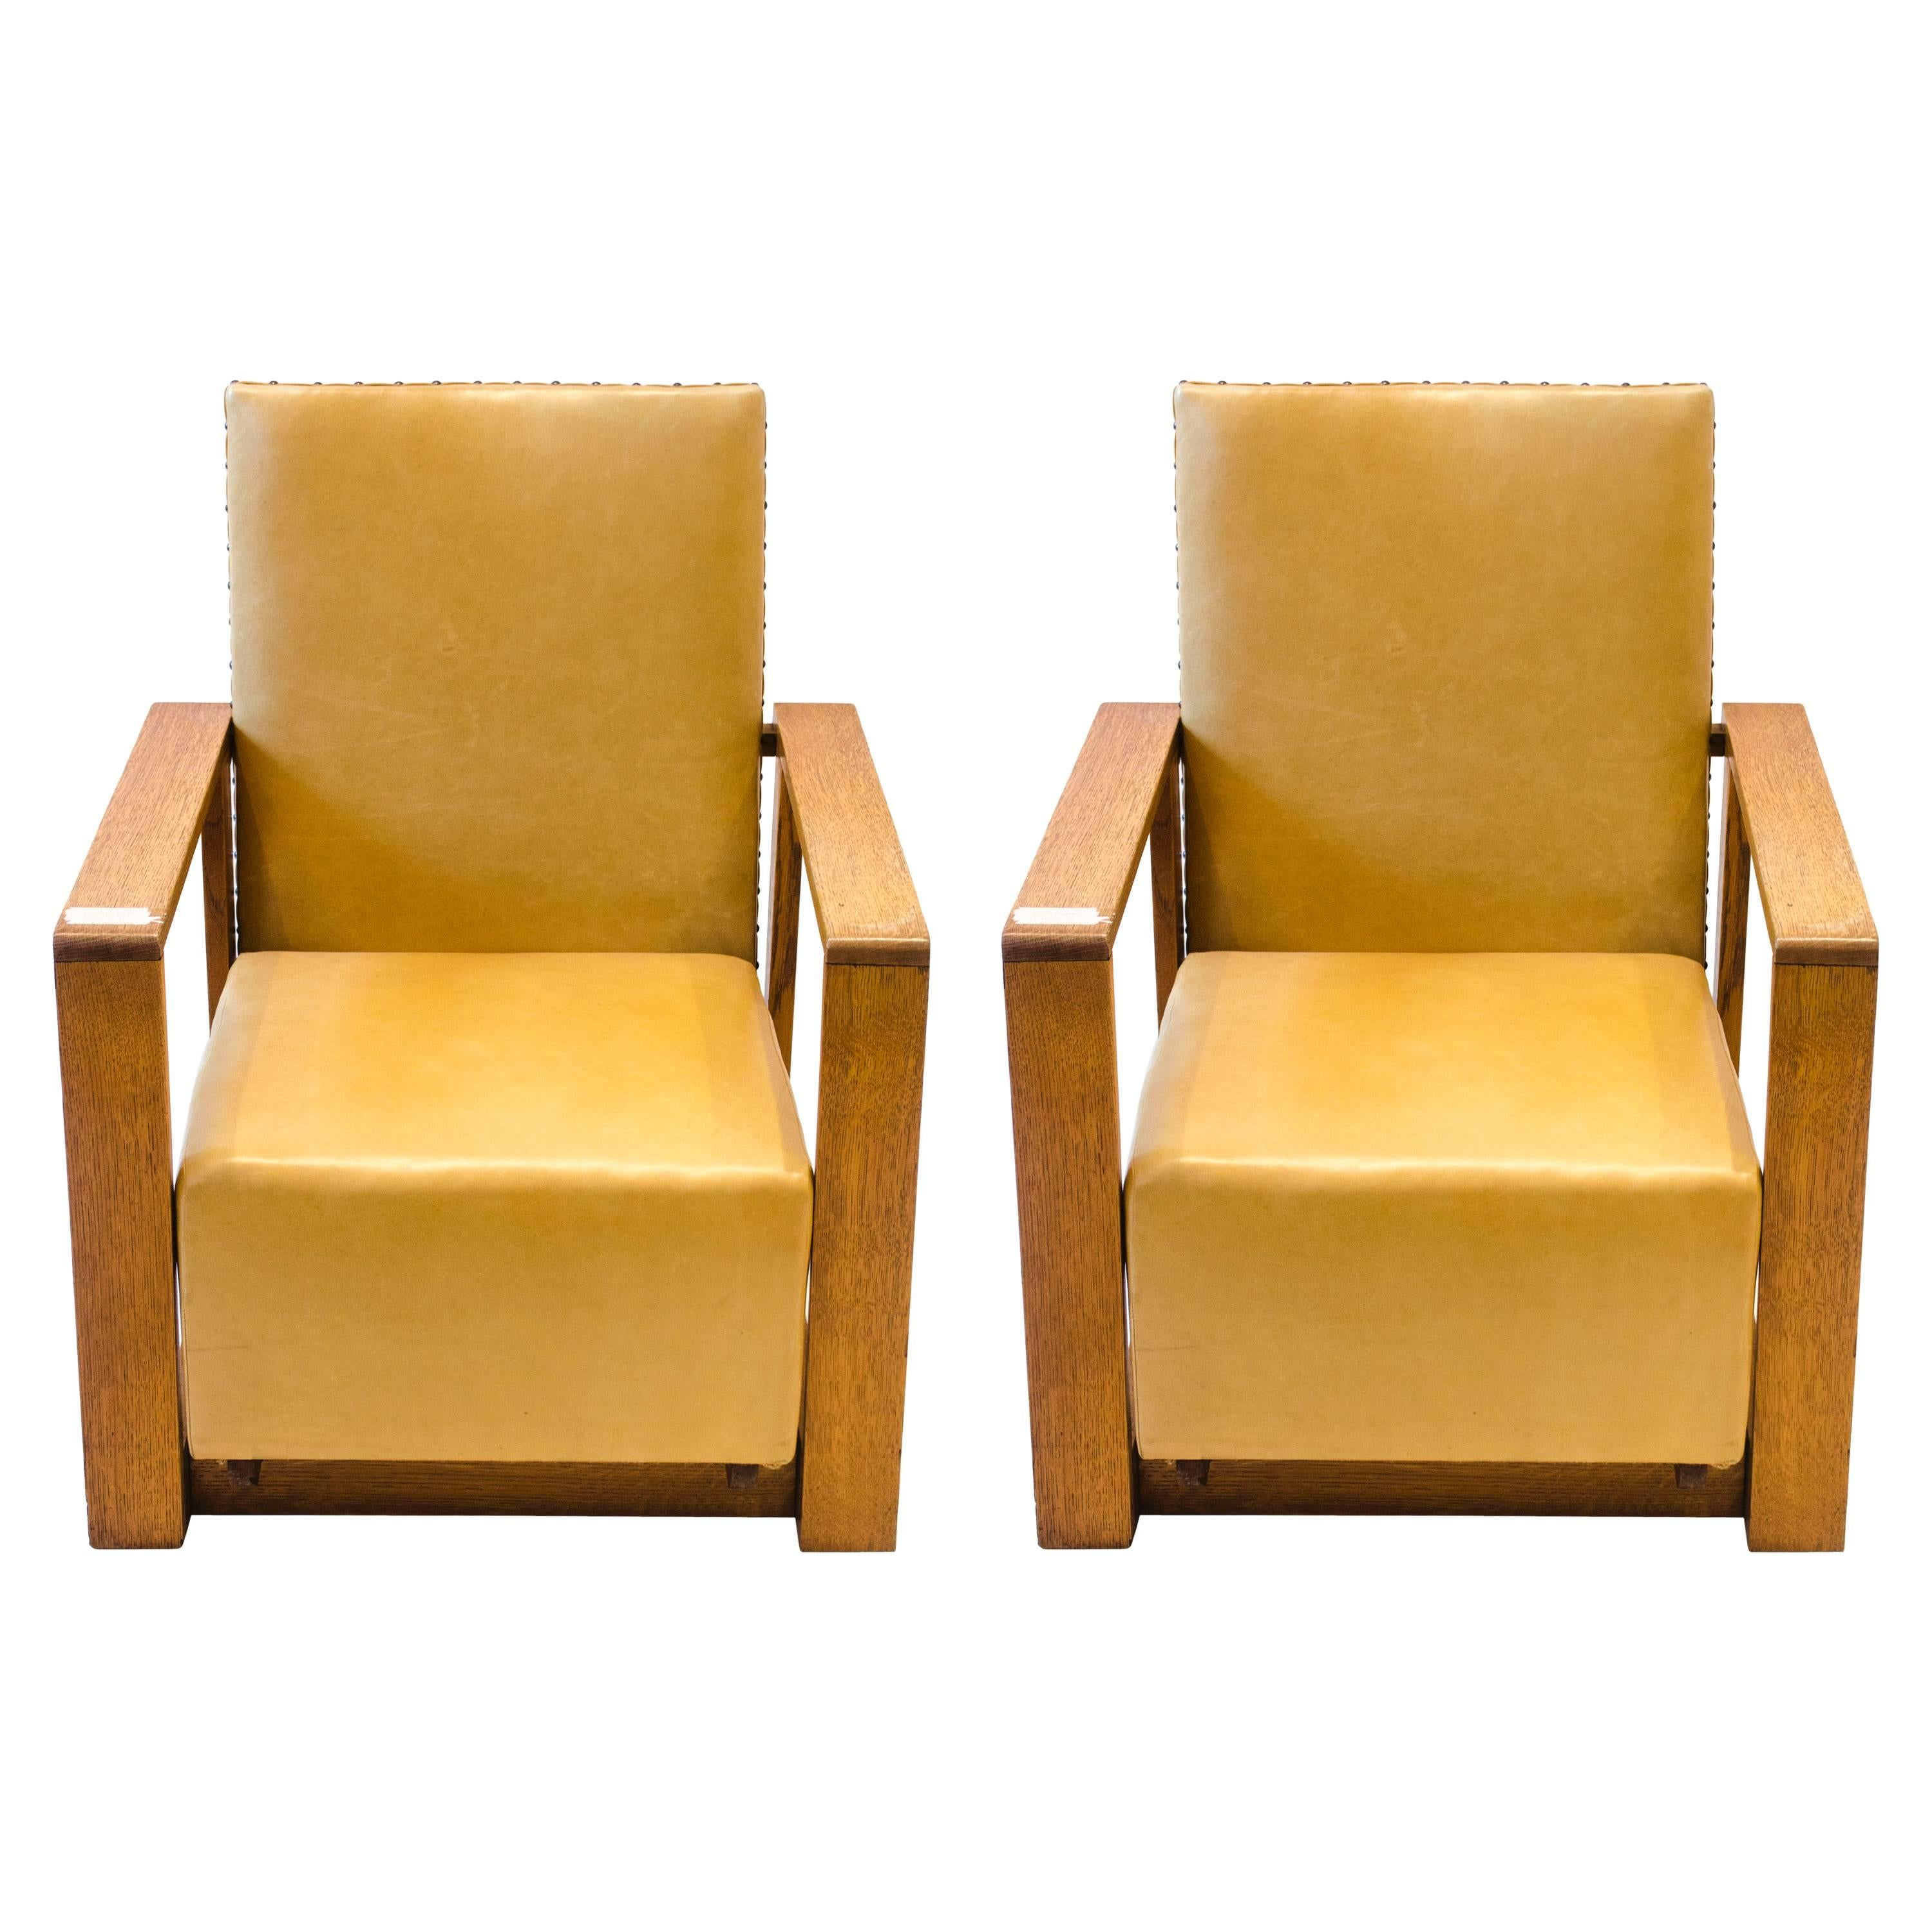 Gordon Russell, W. H. Russell. Three Arts and Crafts Oak Reclining Armchairs.